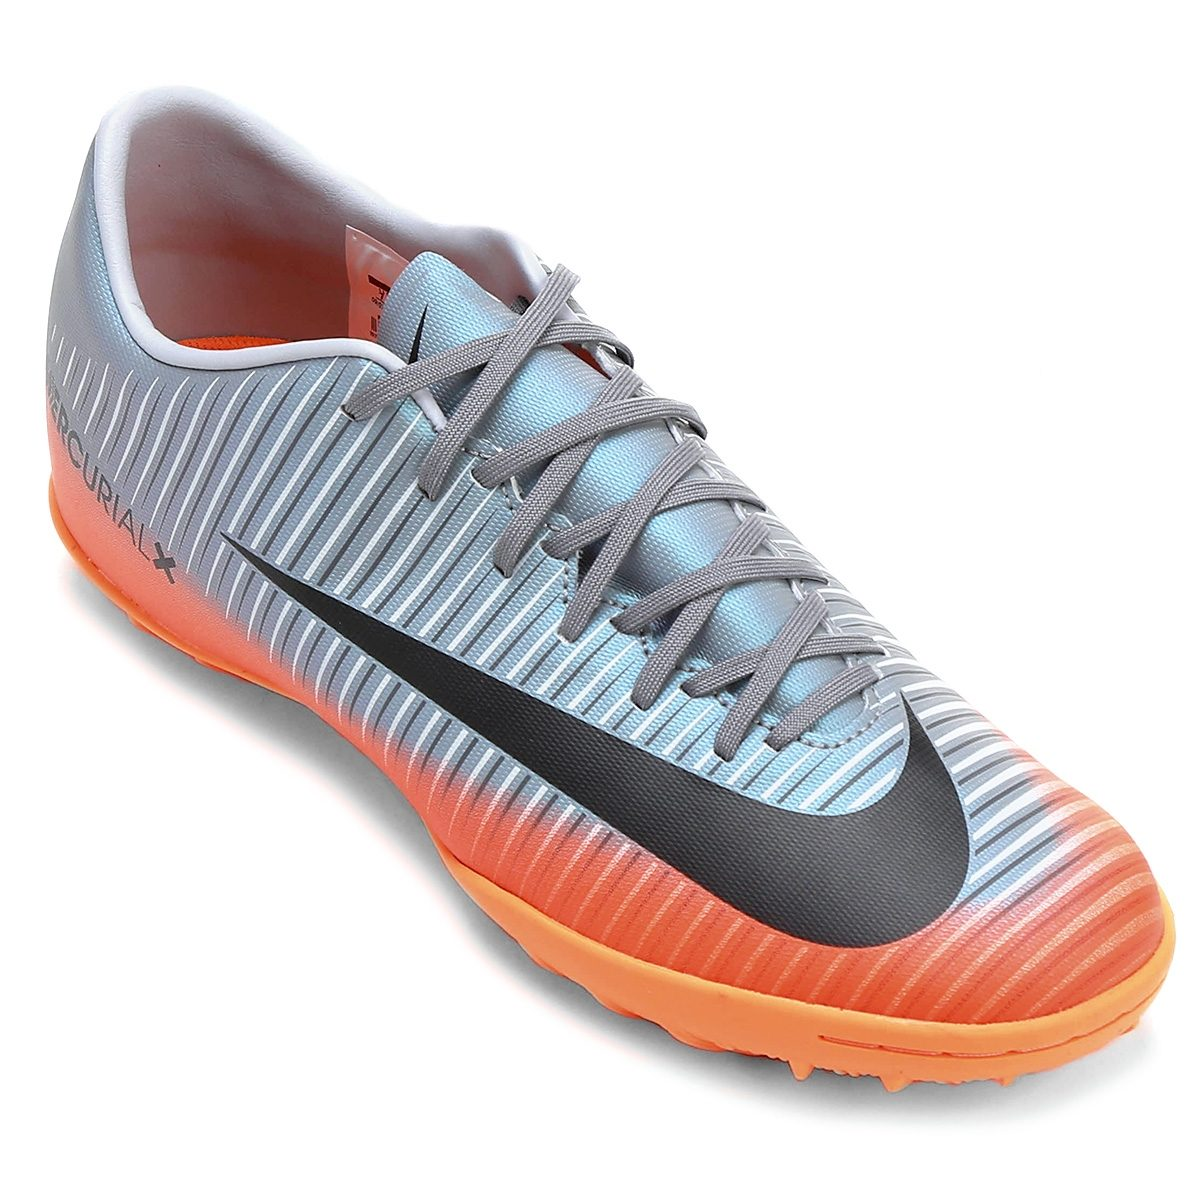 bc0ae5674d6 ... clearance chuteira nike mercurial victory 6 cr7 tf society original nf. carregando  zoom. bd677